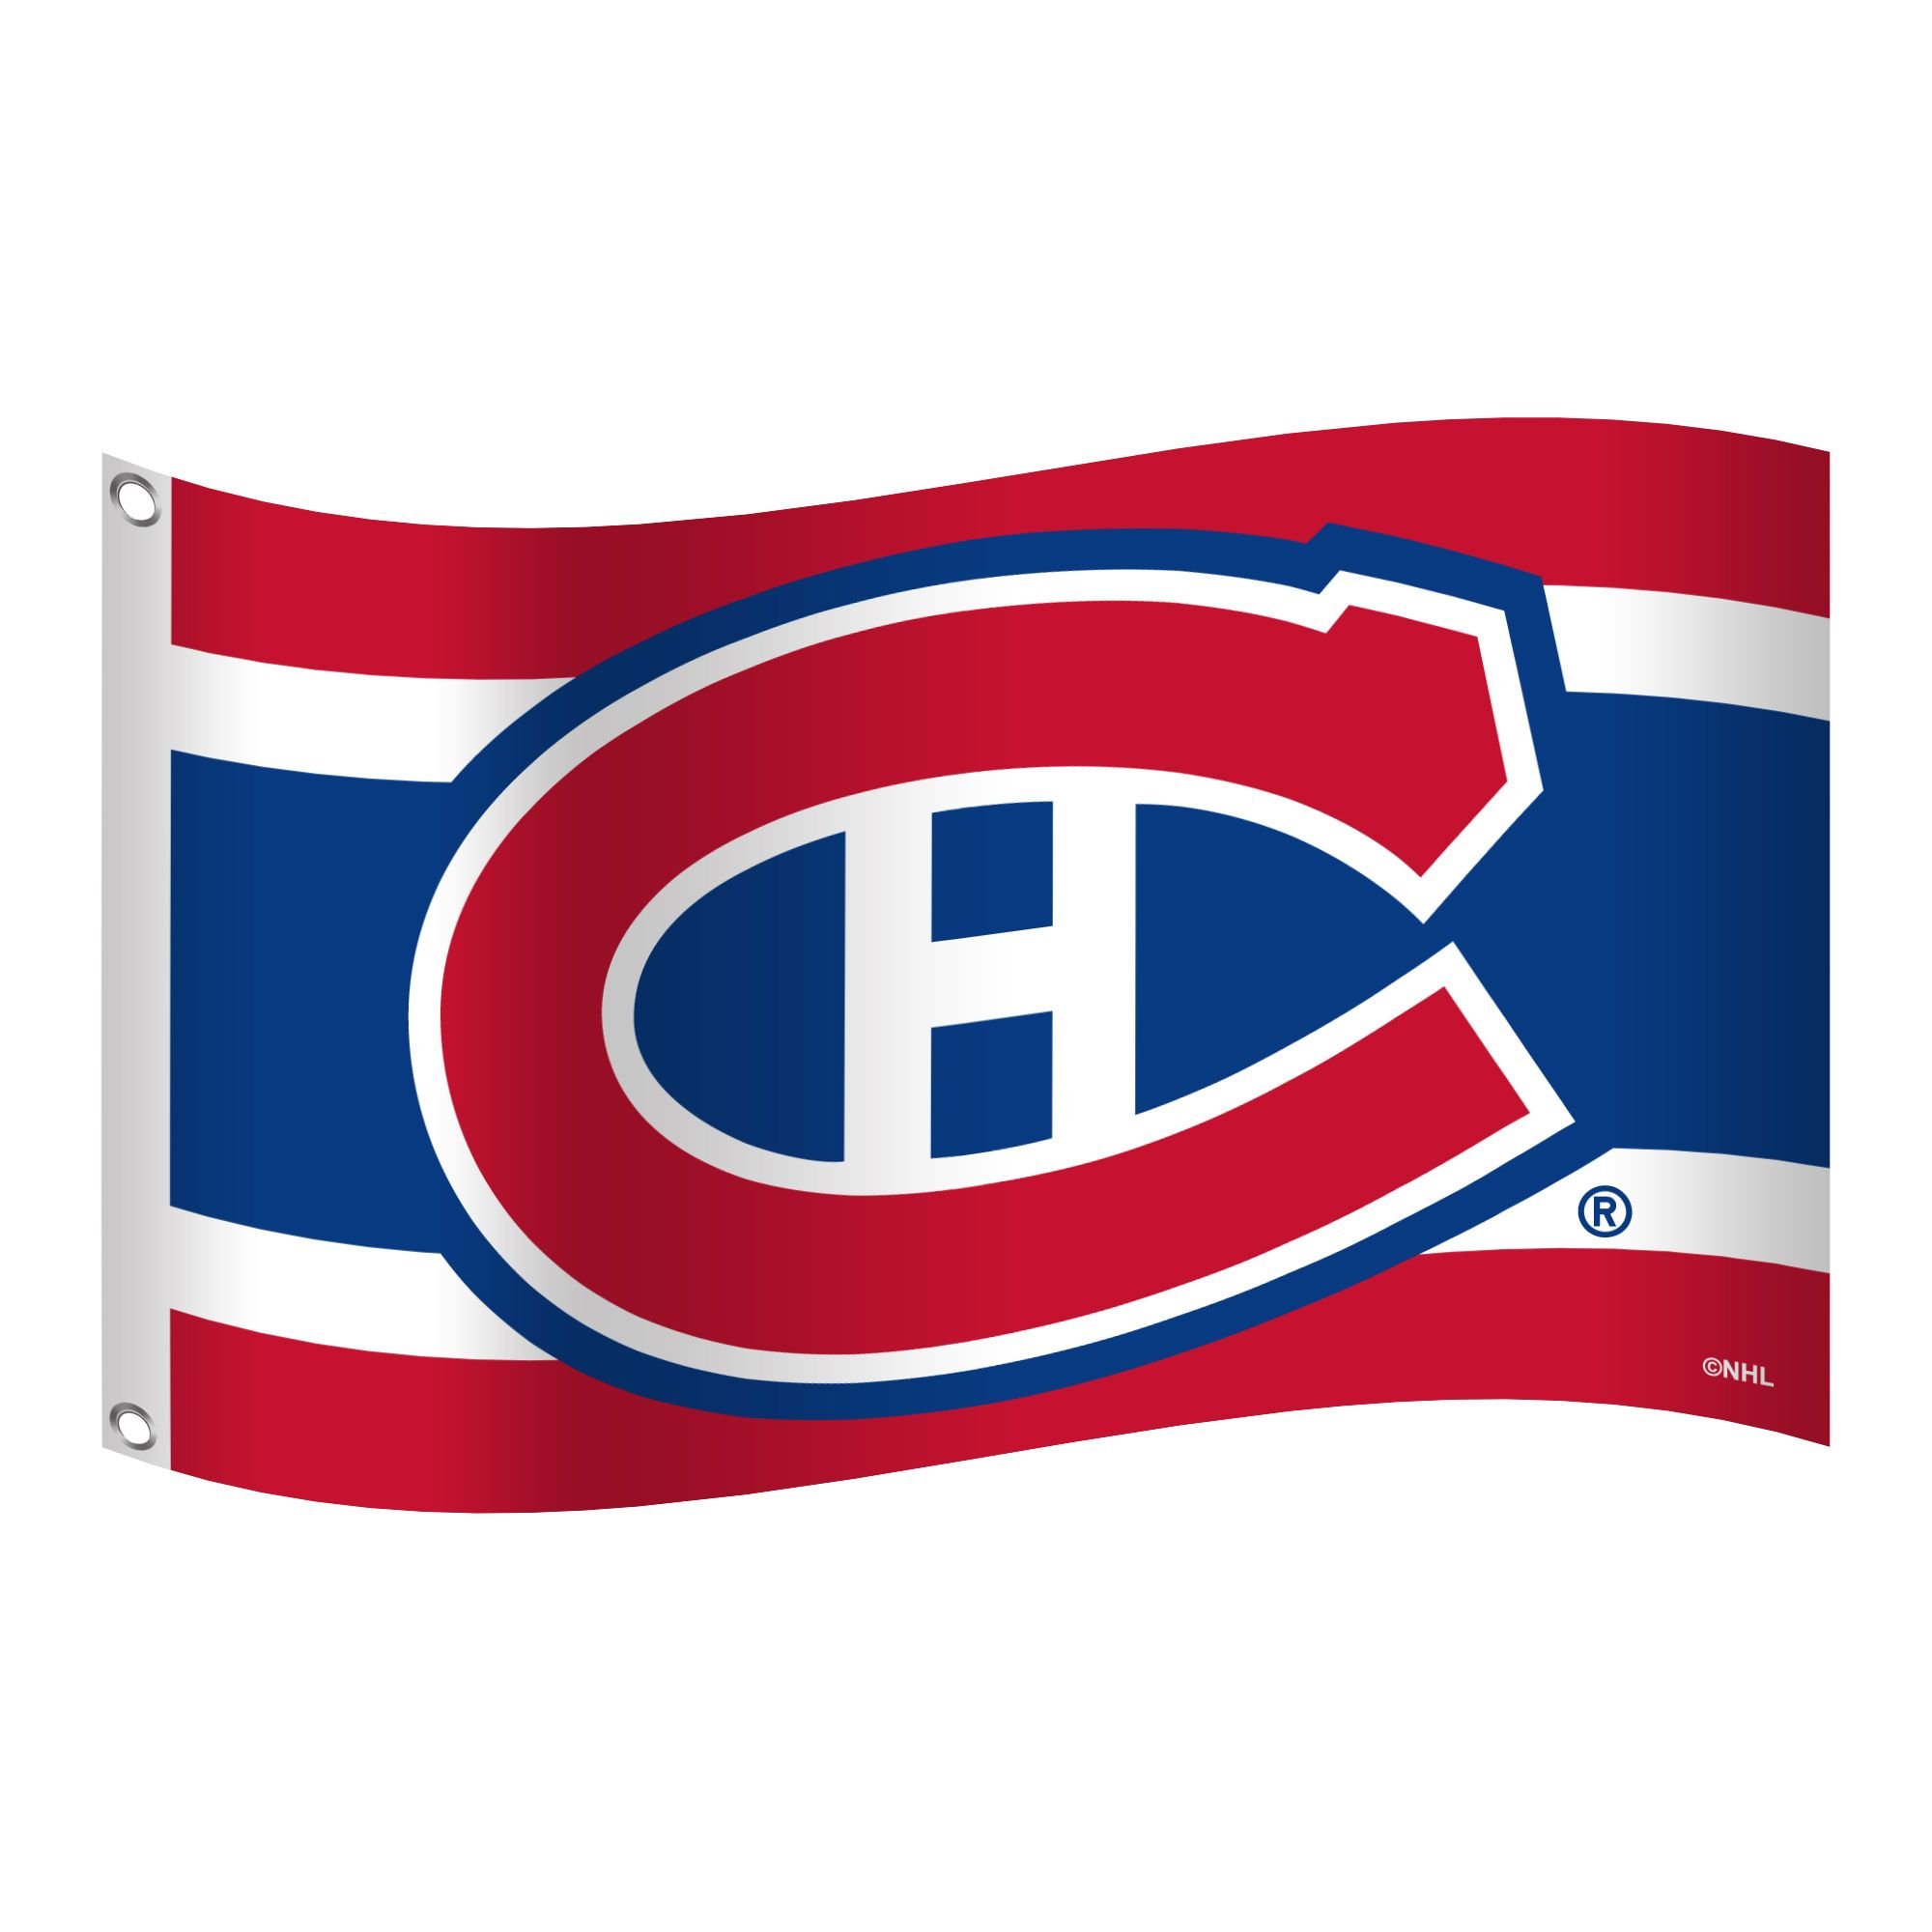 Top Wallpaper Logo Montreal Canadiens - 4b7f714025f6929ba012e0dcff3f4ce6  You Should Have_45661.jpg